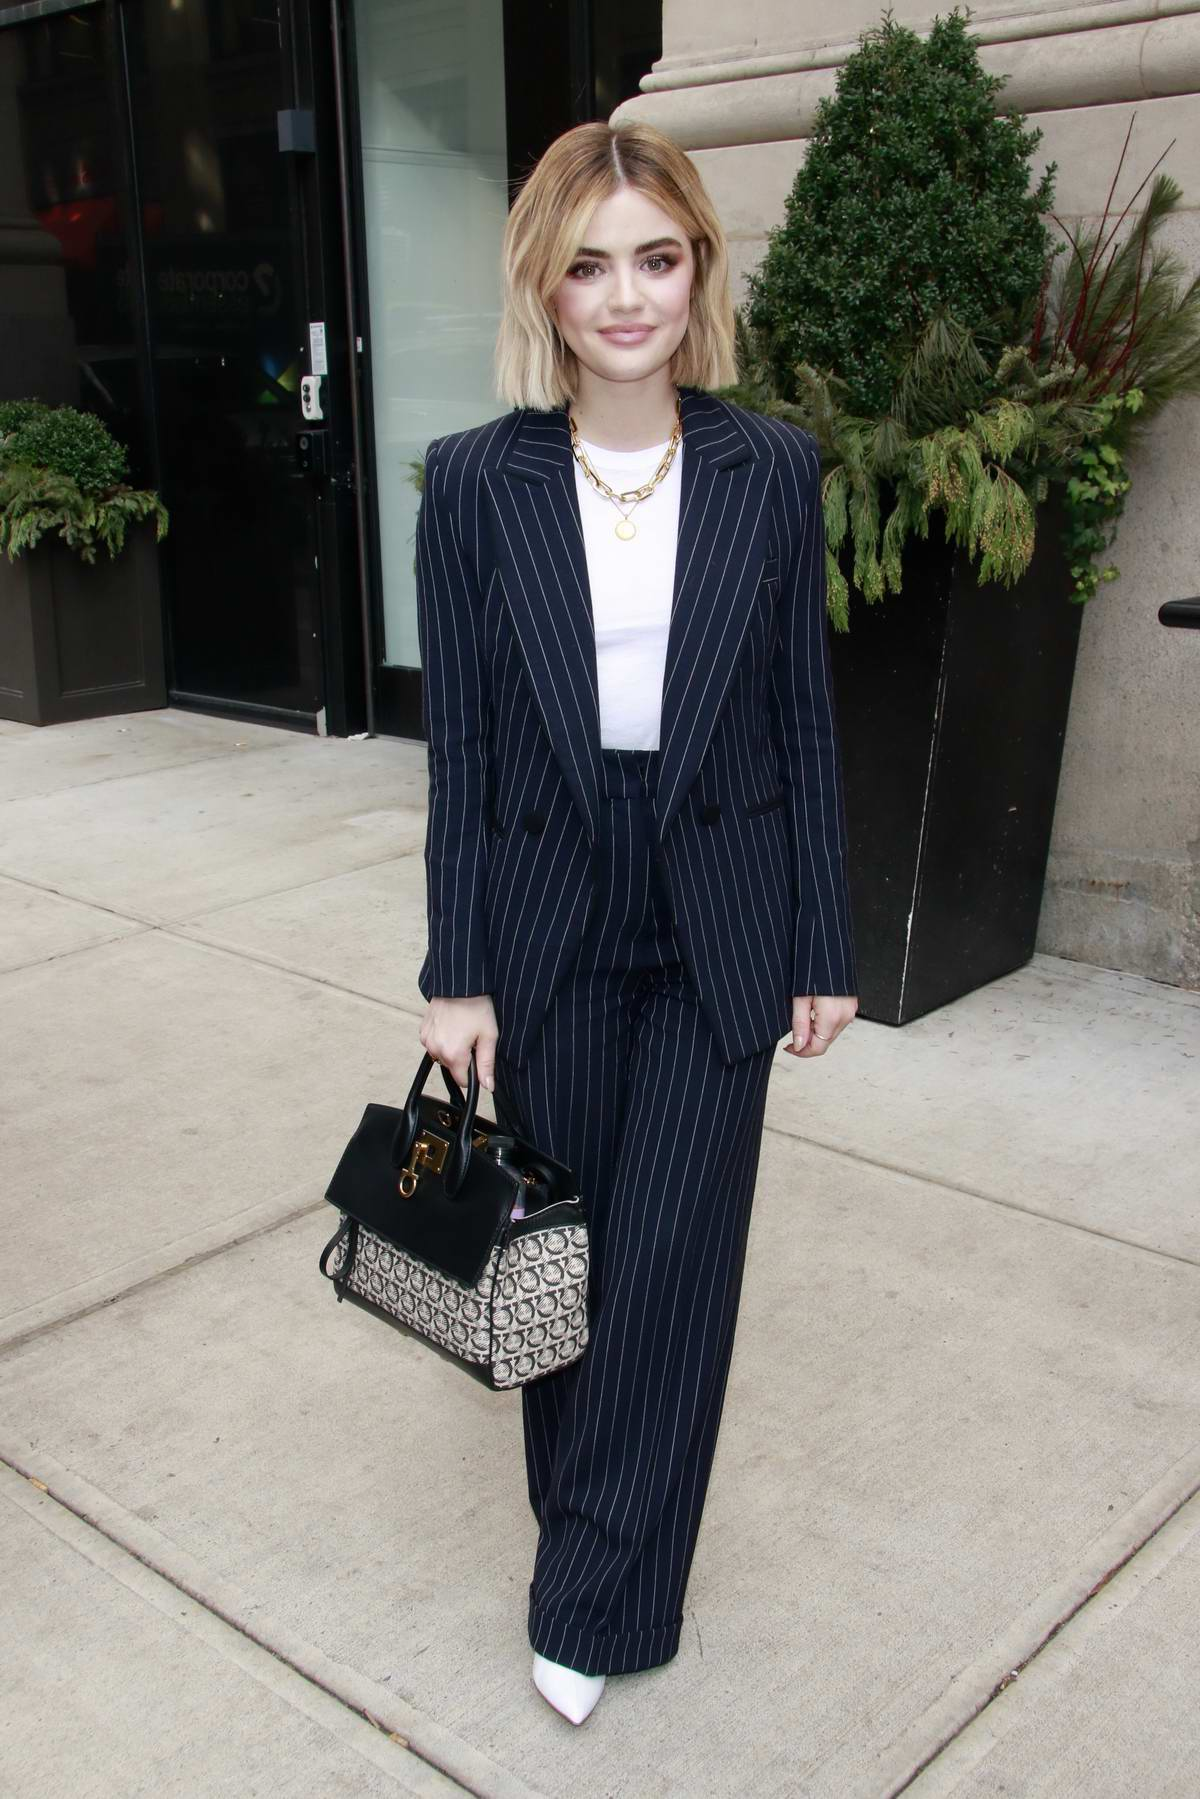 Lucy Hale wears a blue pinstripe suit while visiting BuzzFeed Studios in New York City